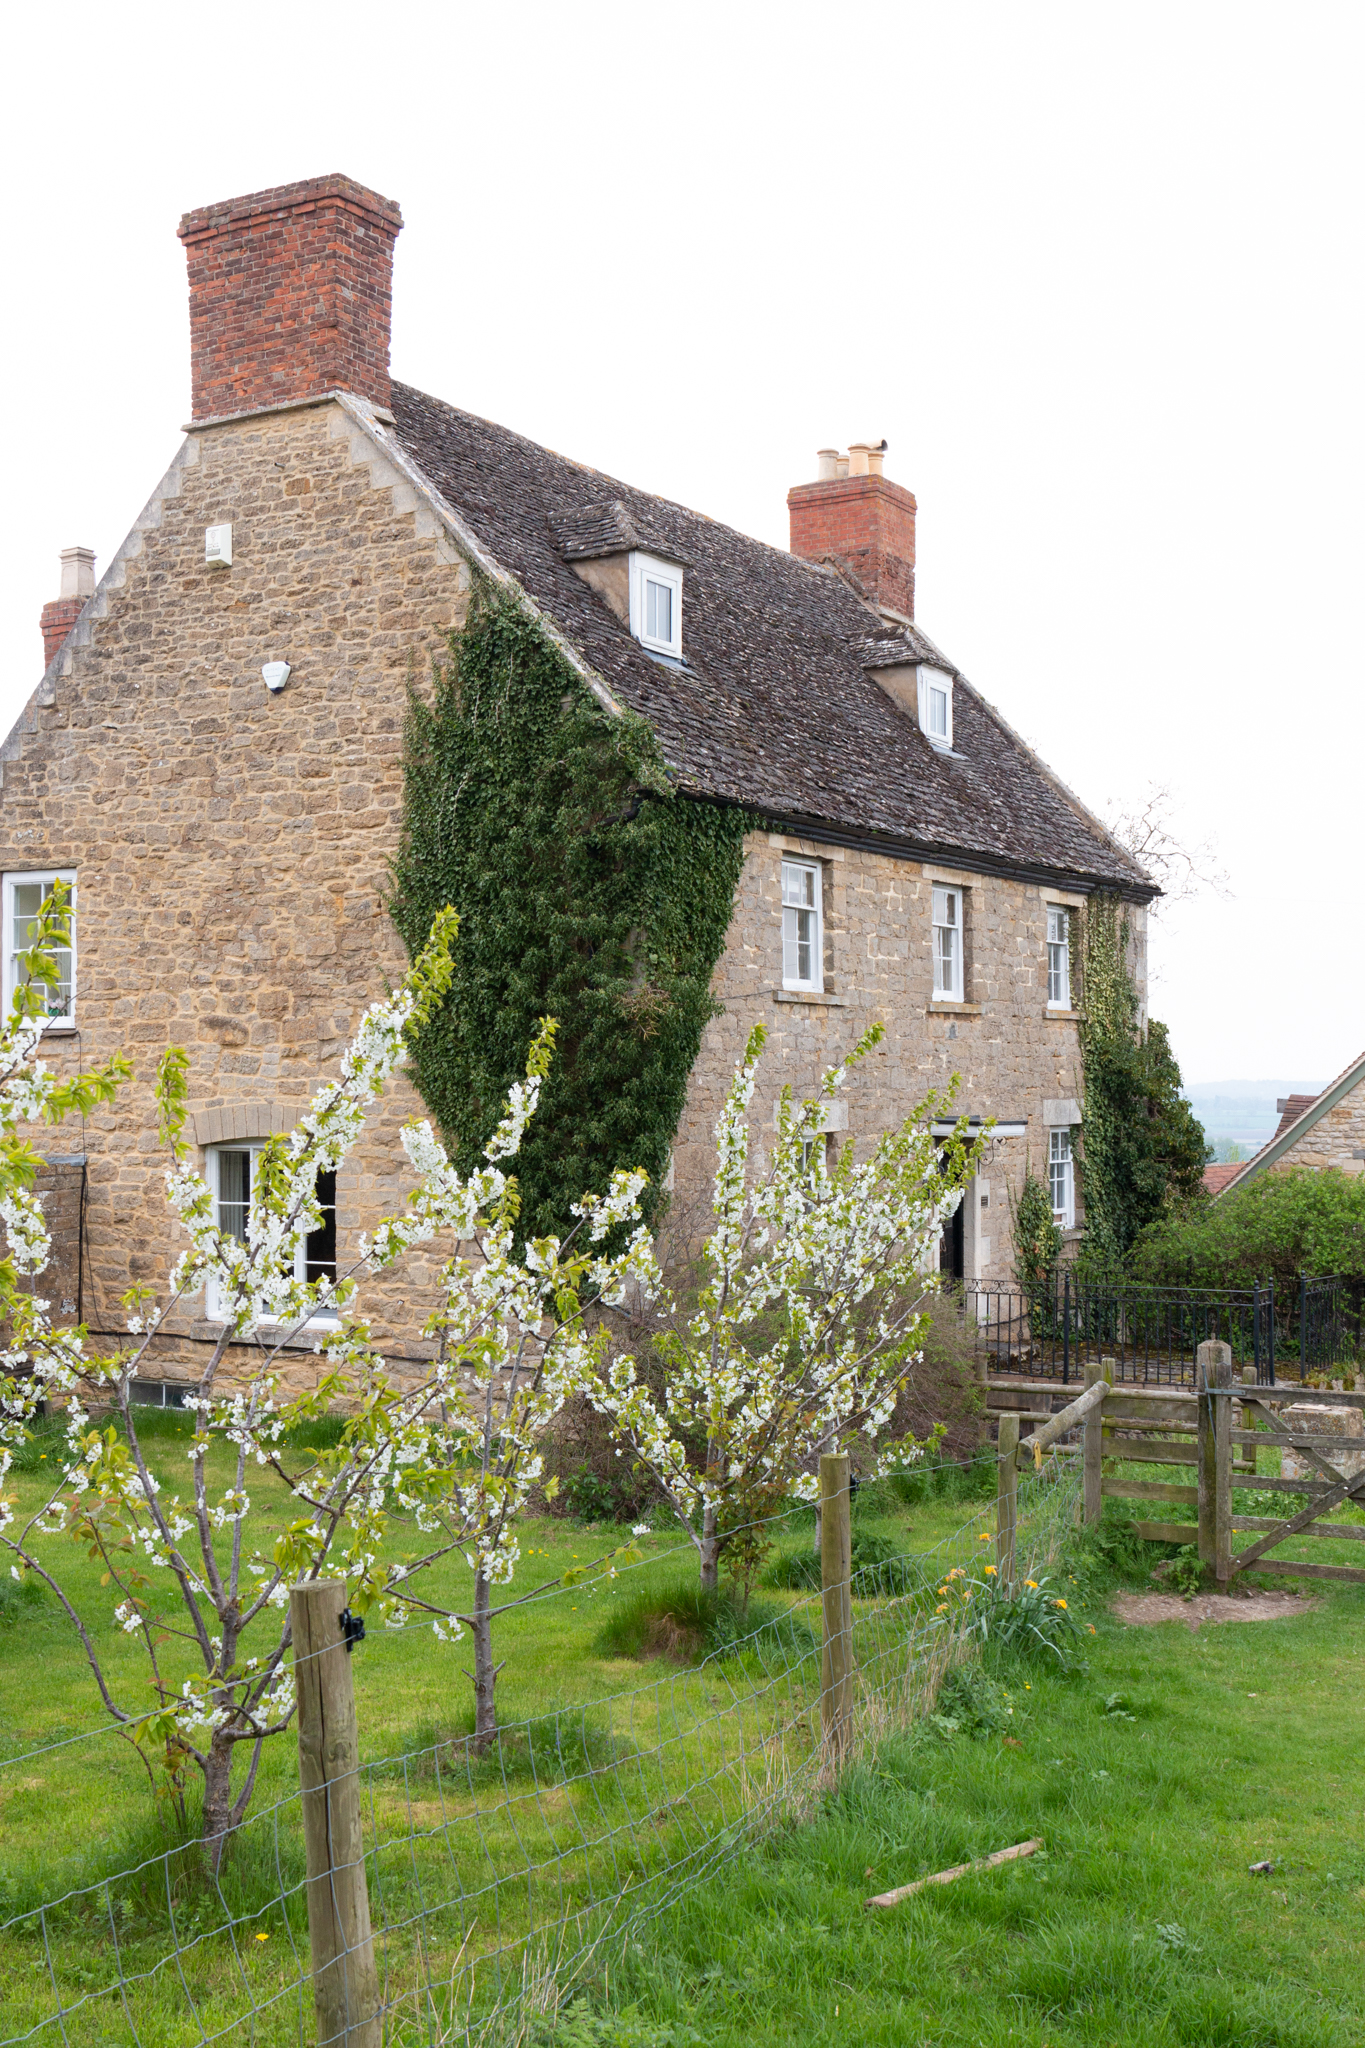 Bredon Hill, England's Cotswolds | Ciao Fabello